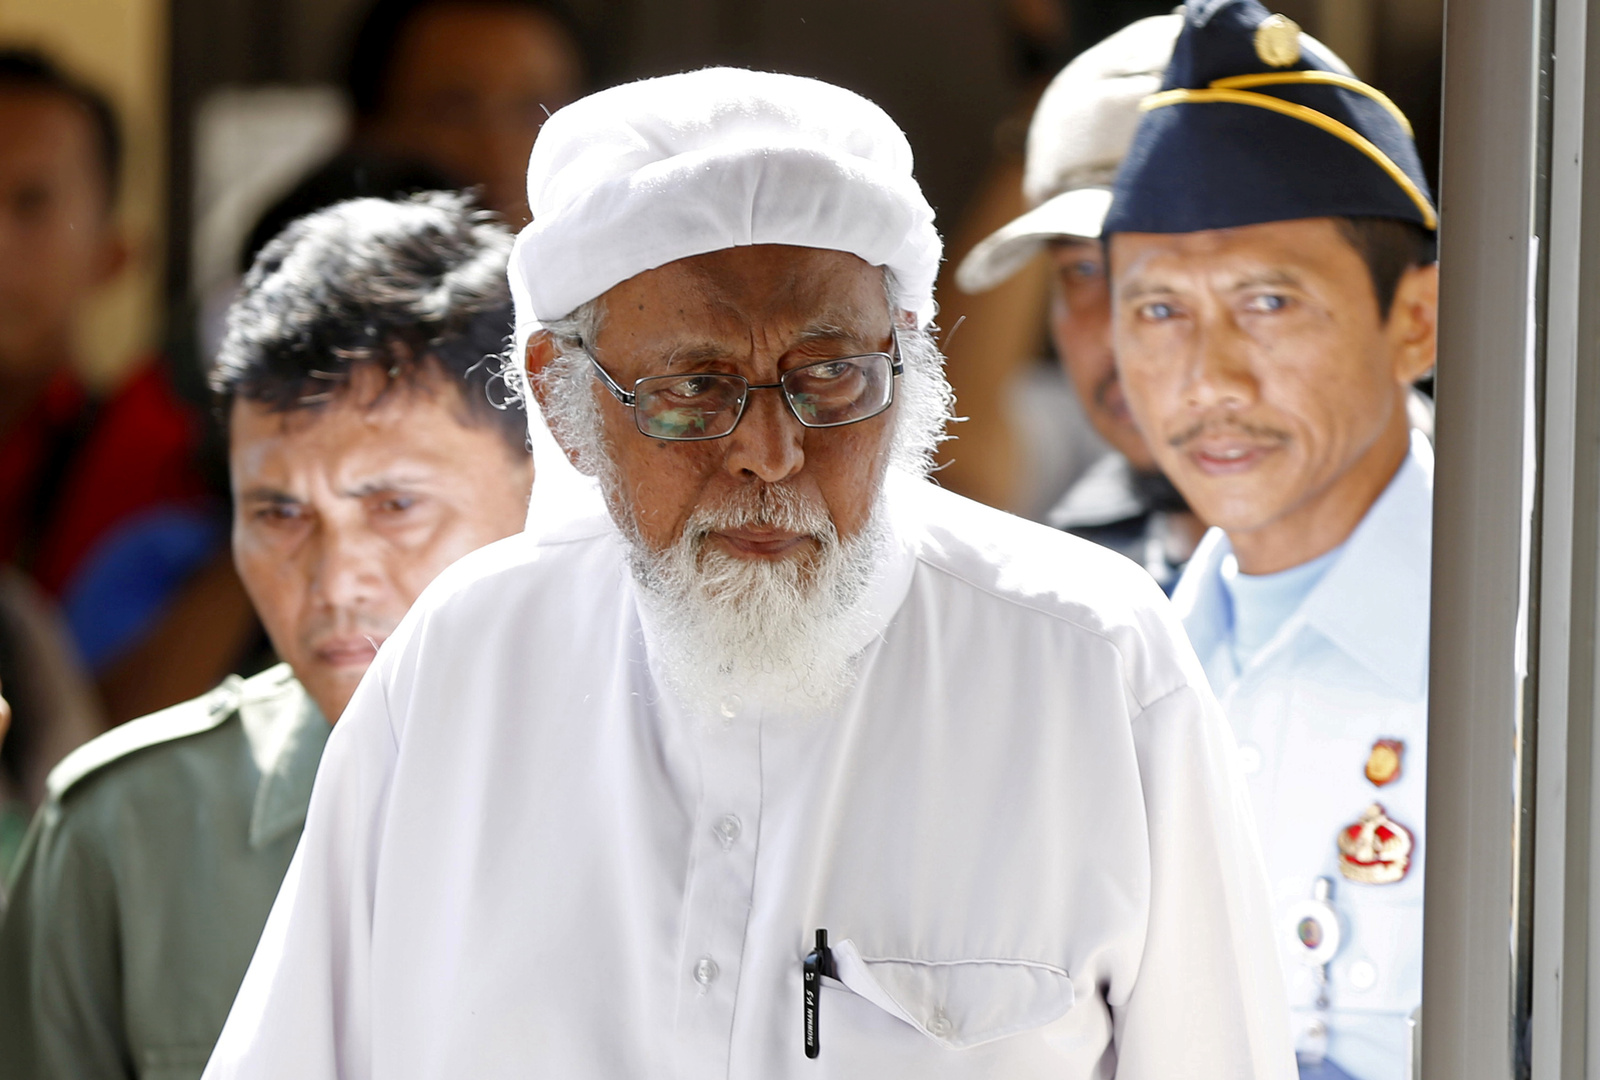 Indonesia released militant cleric linked to the Bali bombings